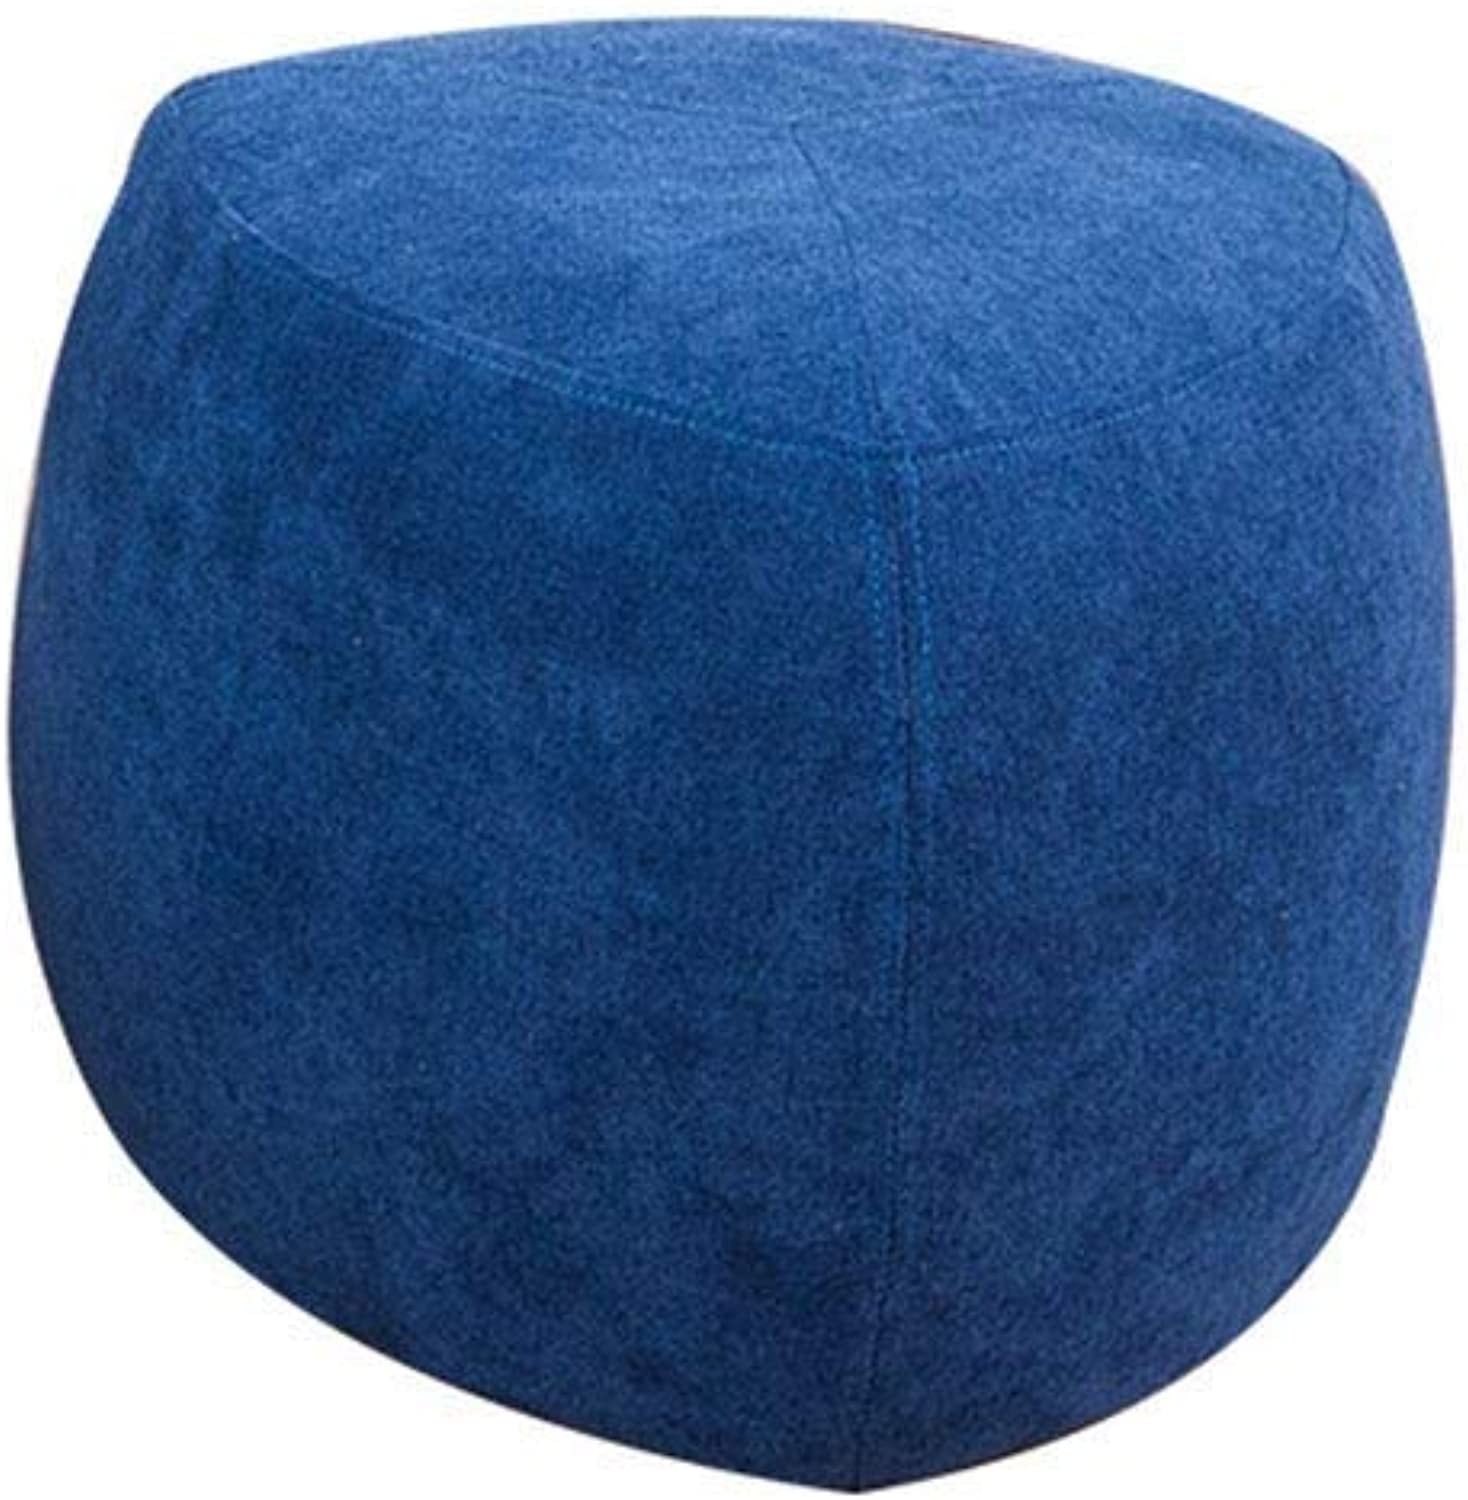 Footstool, Simple Modern Stool Creative Lazy Sofa Bench Fabric Block Home Small Stool Multifunctional Storage Footstool (color   C, Size   42  34cm)